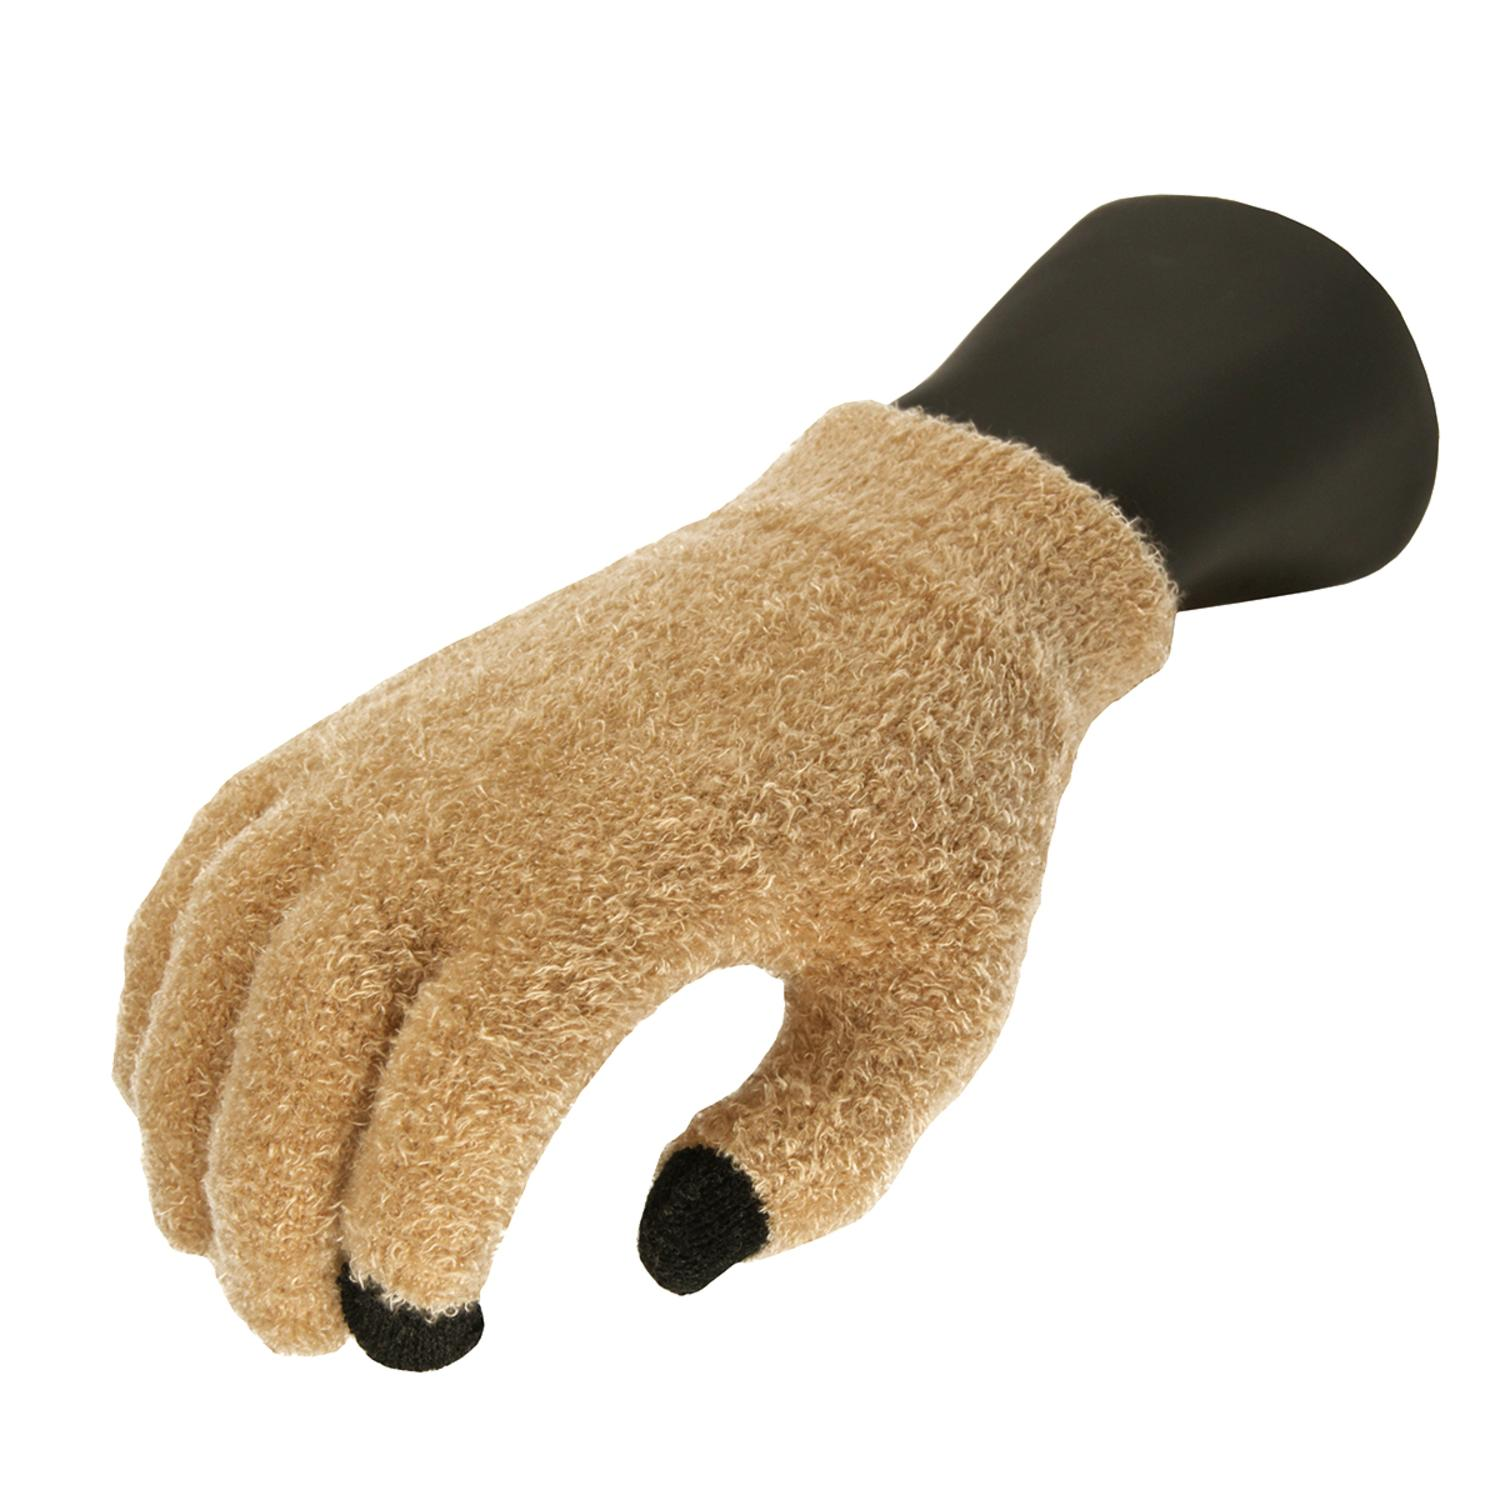 Women's Light Khaki Aloe Vera Plush Winter Touchscreen Gloves - One Size